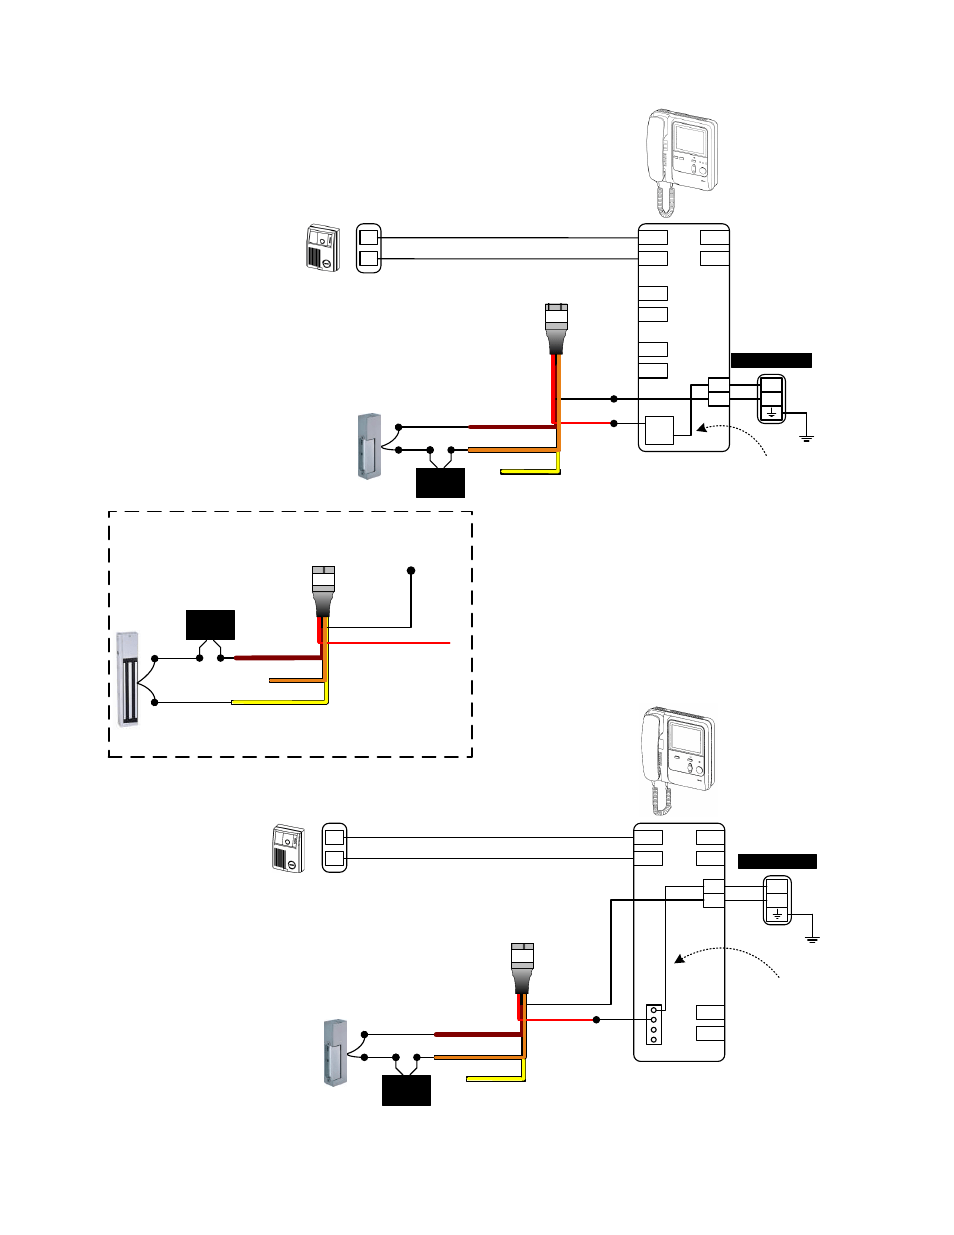 aiphone door release relay module ry 24l page2?resize\=665%2C861 wiring diagram hid edge solo 5 pin relay wiring diagram, led von duprin wiring diagram at webbmarketing.co